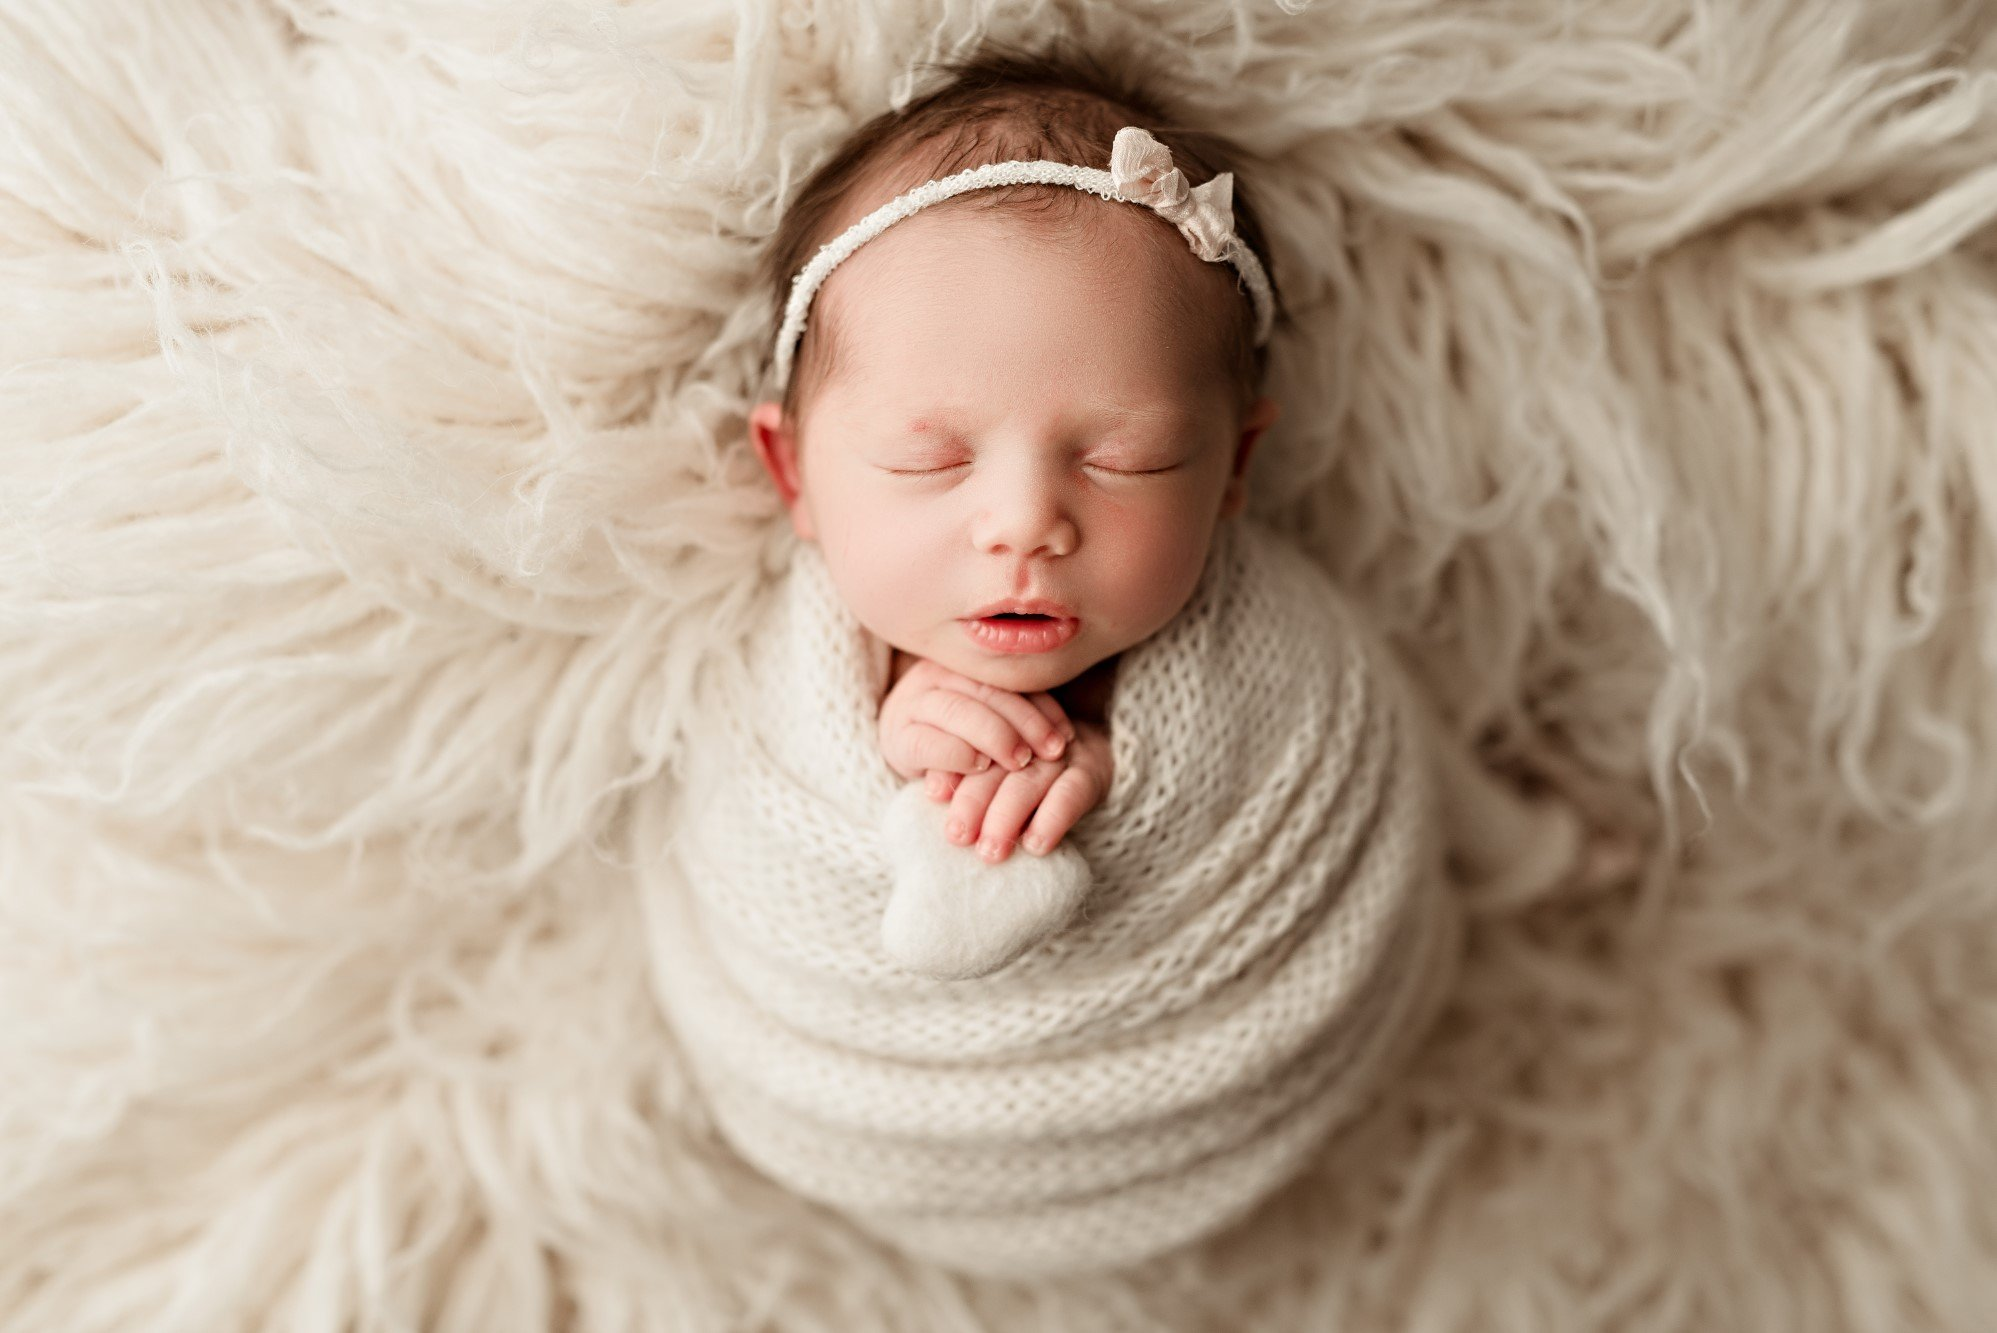 newborn photography calgary - brianna payne photography